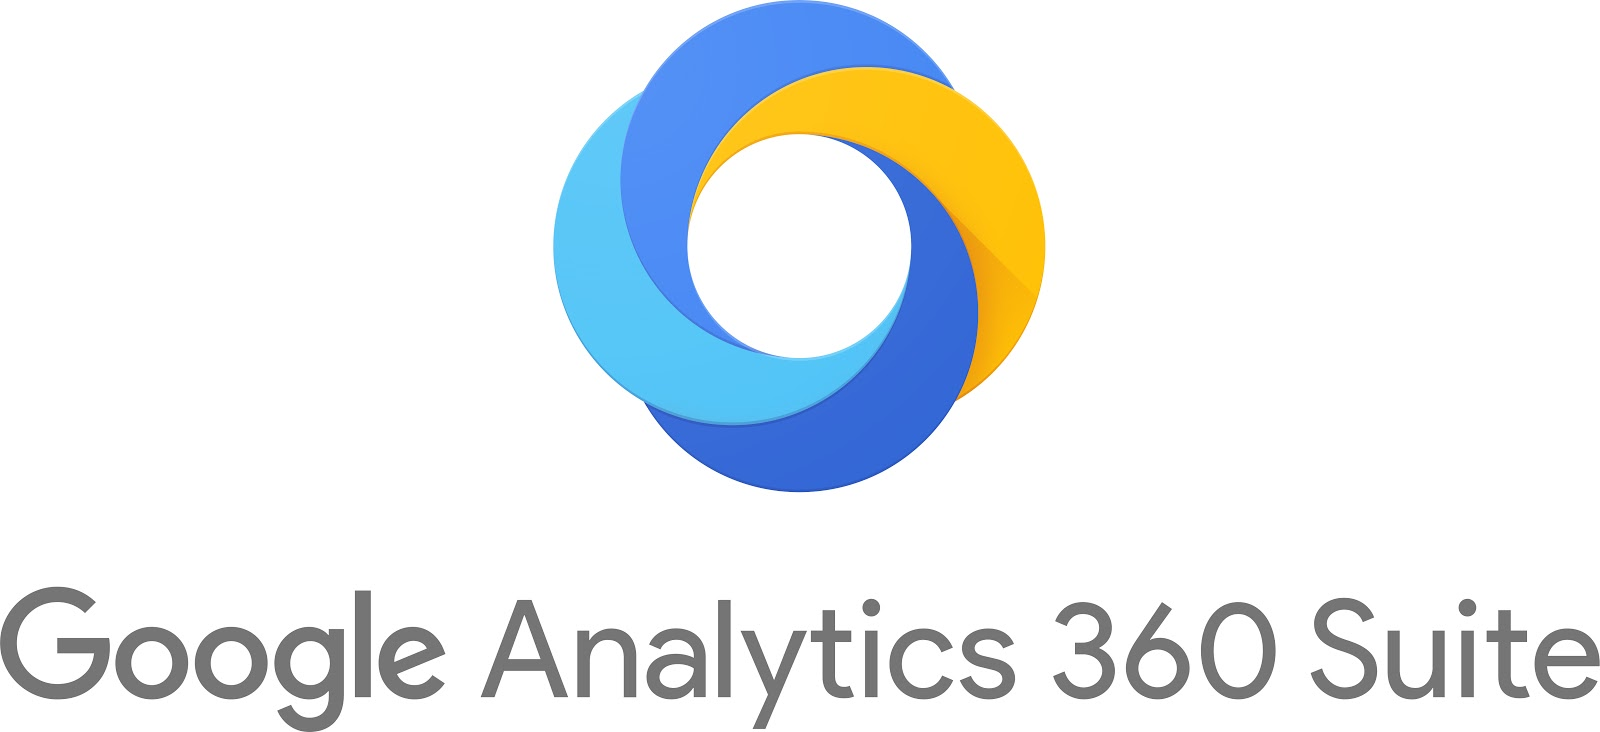 Awesome Google Analytics 360 consultants Experts Available For Project Work Right Now.